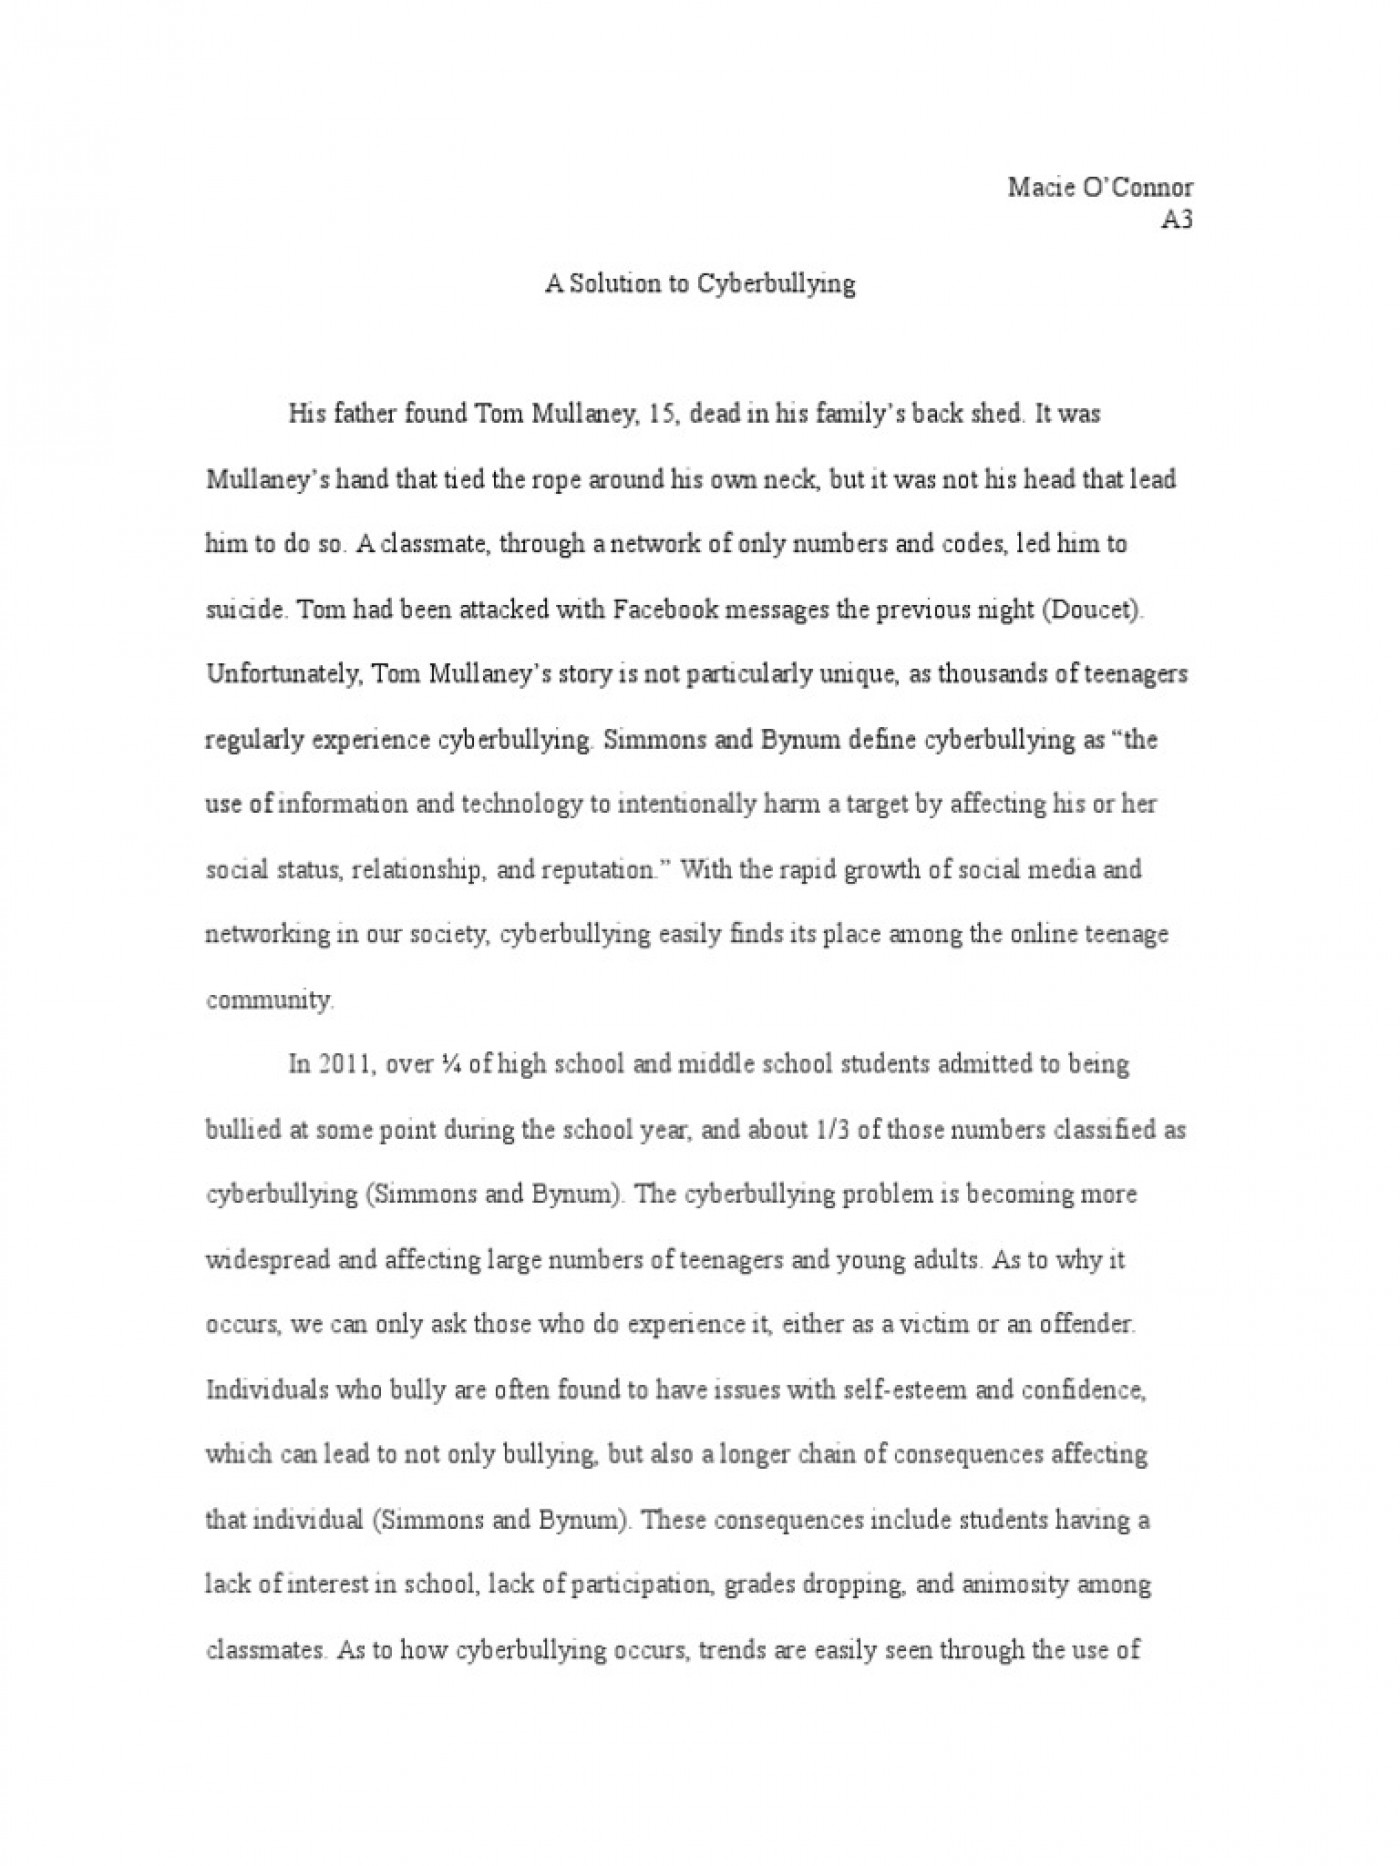 008 Essay Example Bullying Problem Solution Cyberbullying Communication How To Stop In Schools High School Avoid At Deal With Ways Prevent Awful Topics Cyber Titles Persuasive Ideas 1400